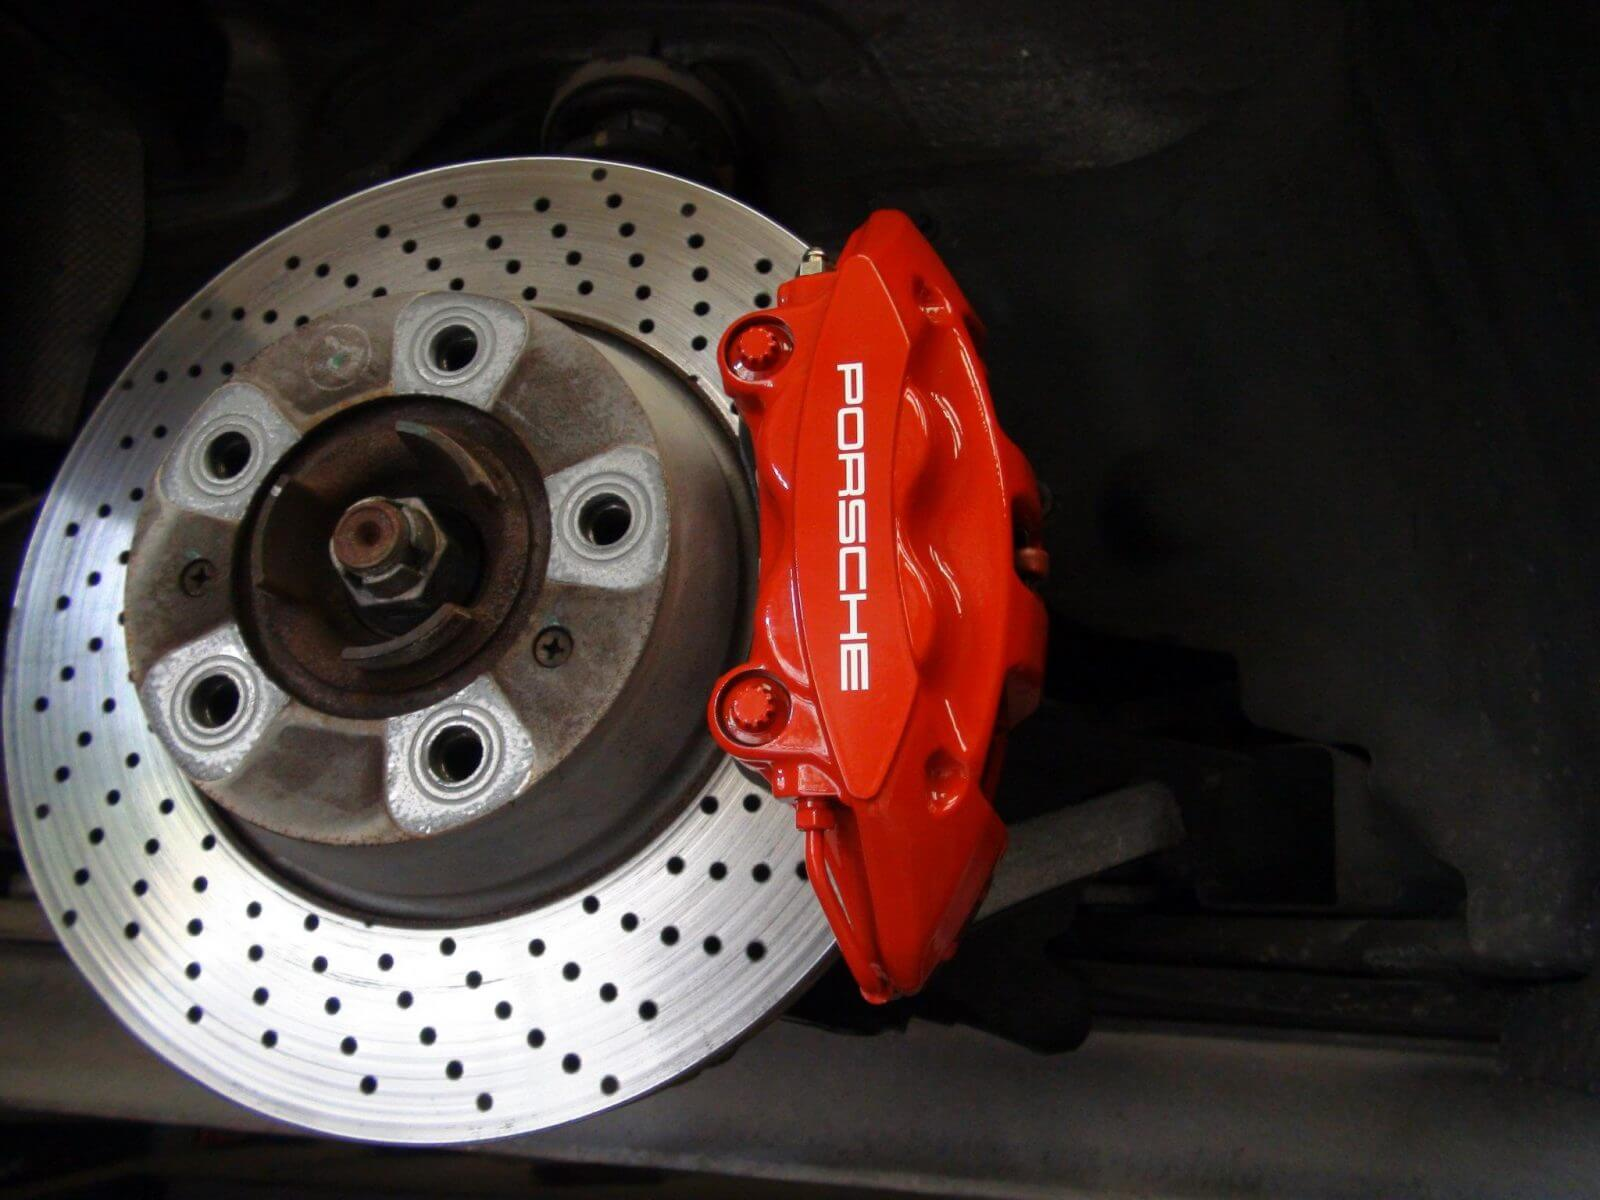 Porsche 911 brake calipers after 1